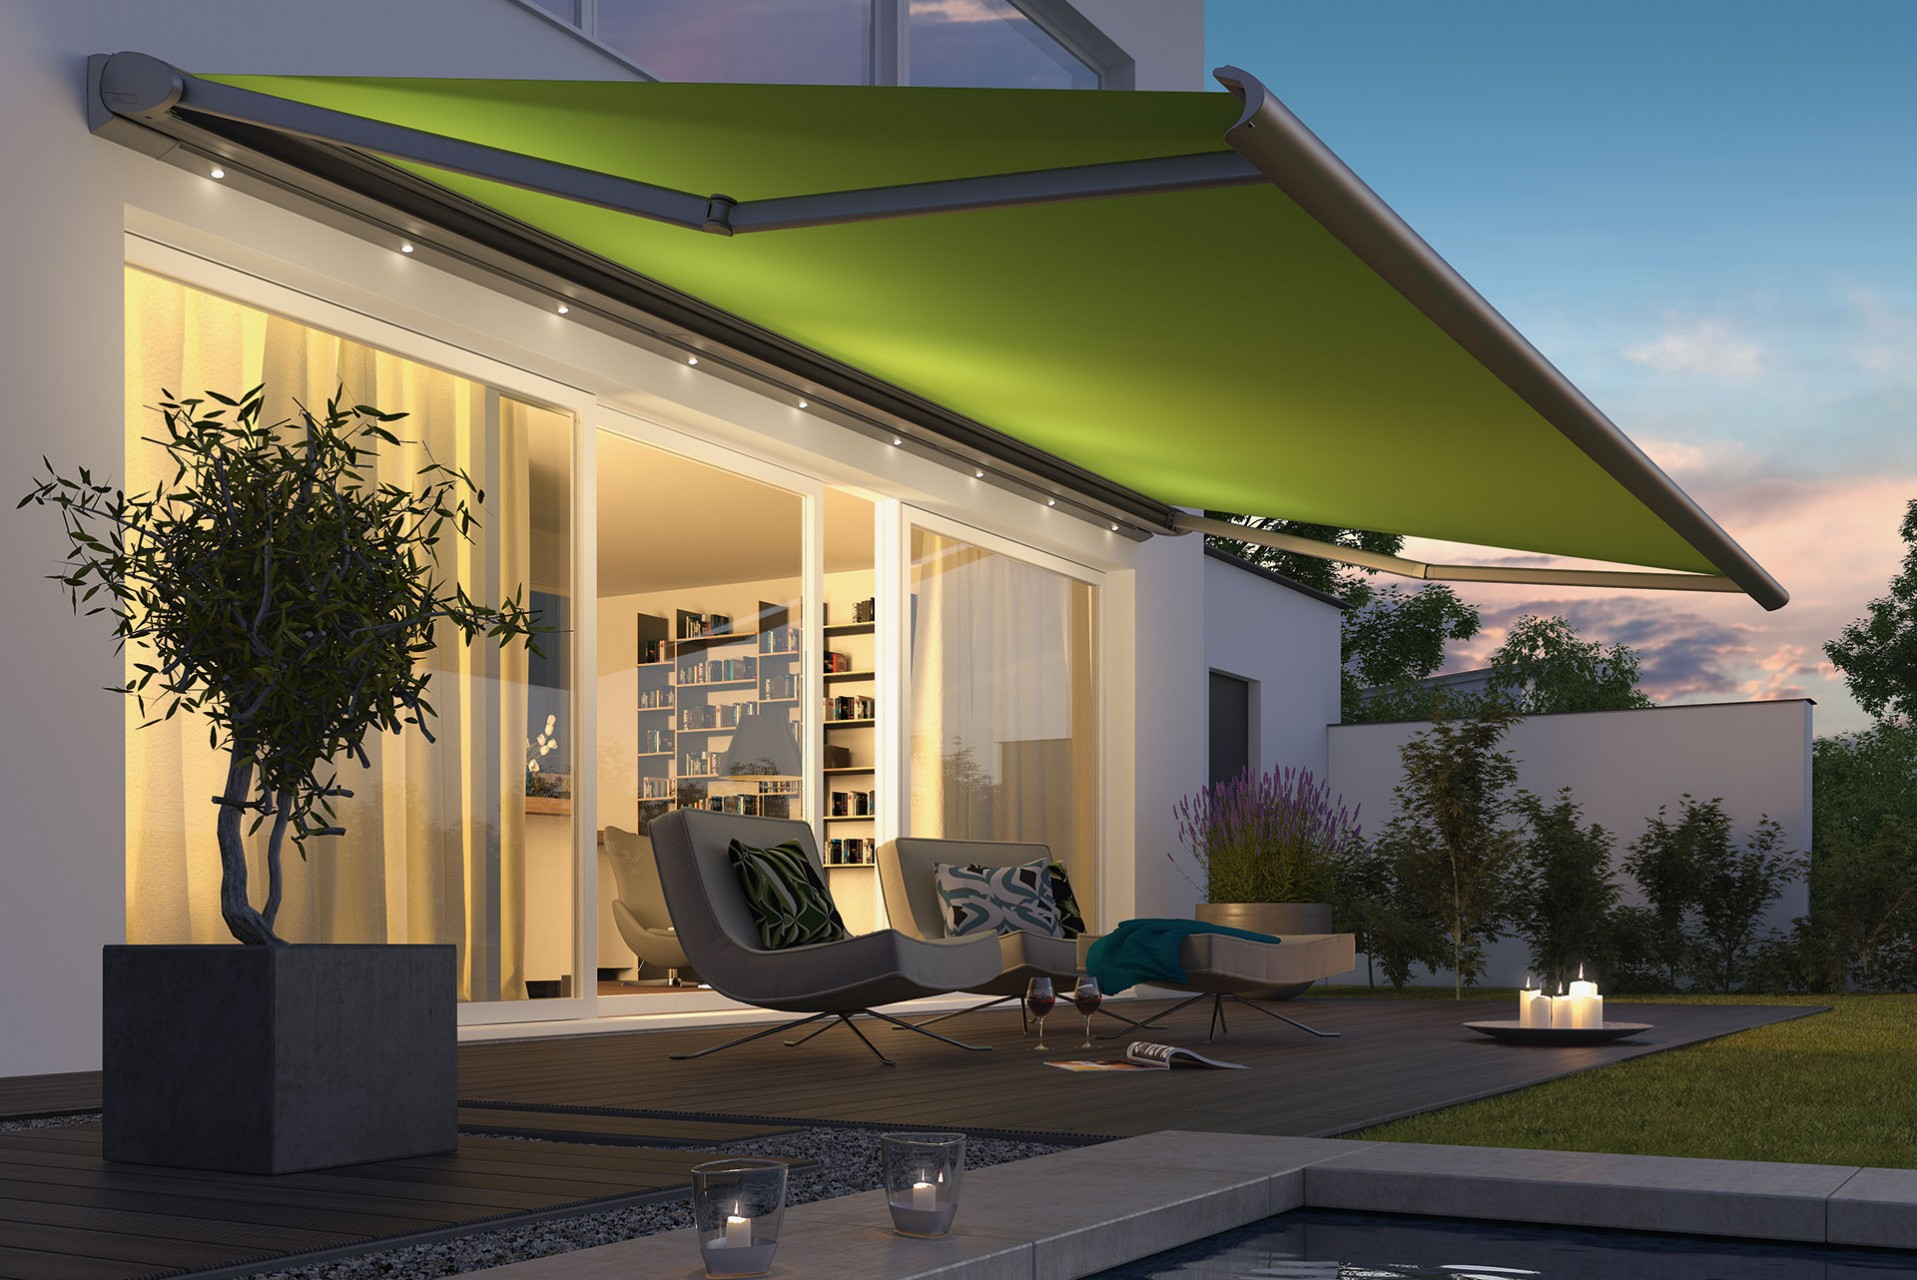 Ozshade Folding Arm Awnings 7